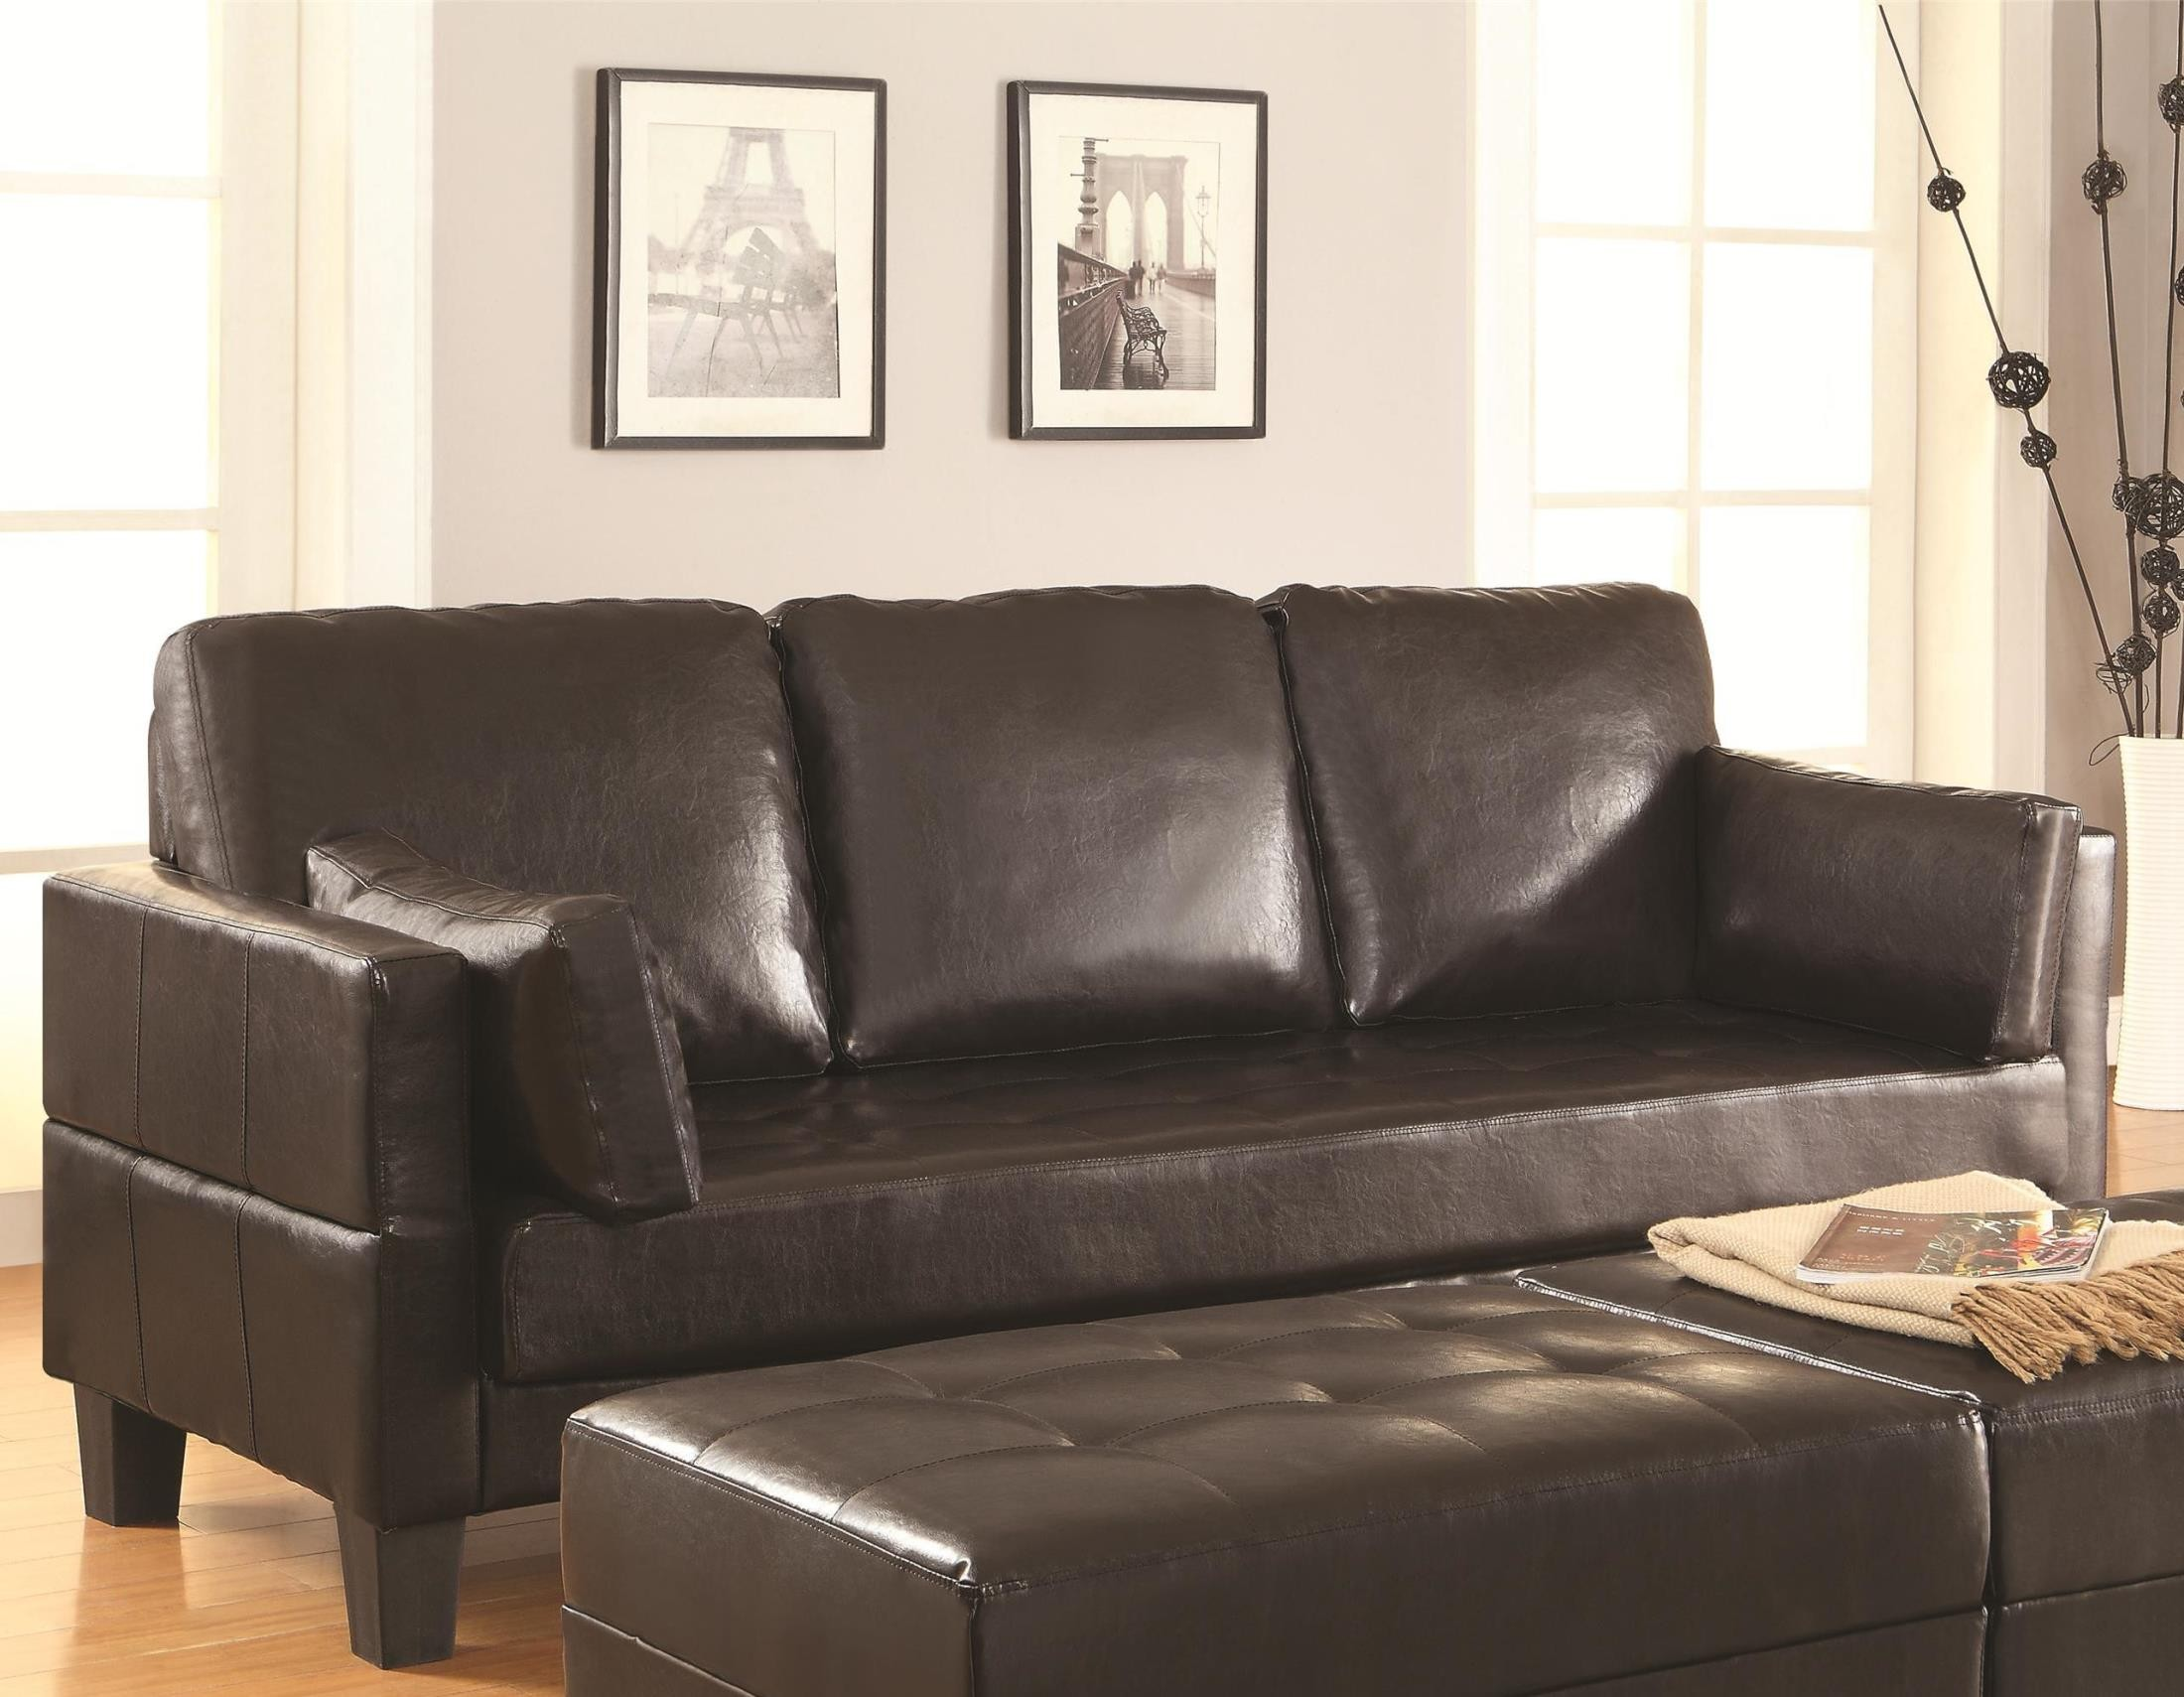 coaster futon sofa bed with removable armrests review s shaped crossword puzzle clue ellesmere from 300204 coleman furniture